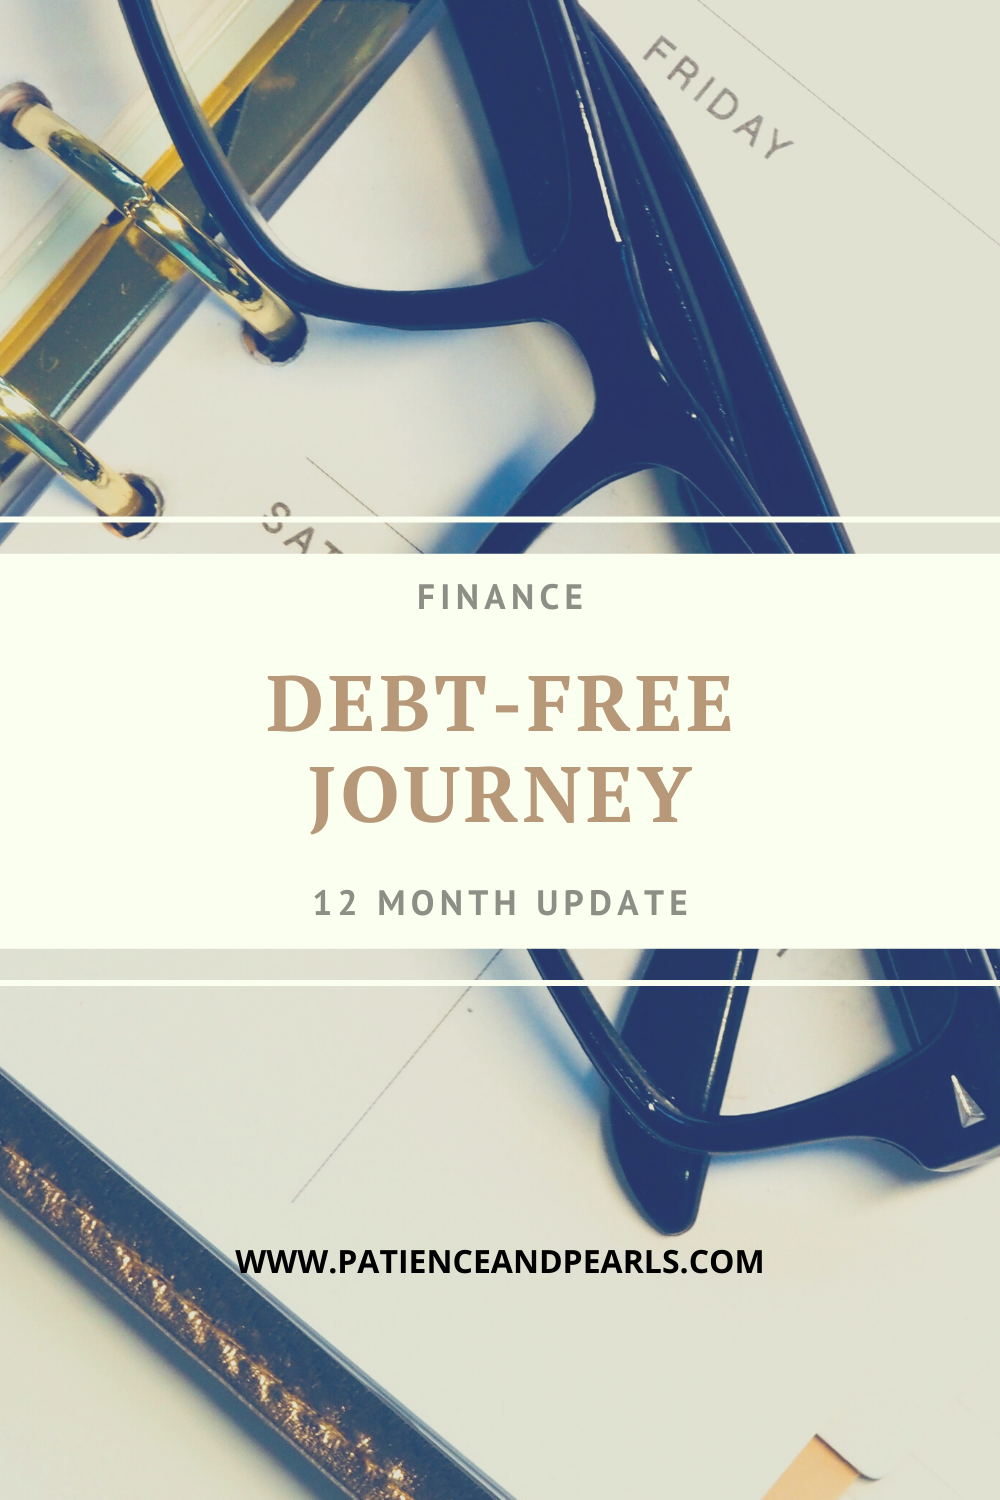 Patience & Pearls - 12 Month Debt-Free Journey